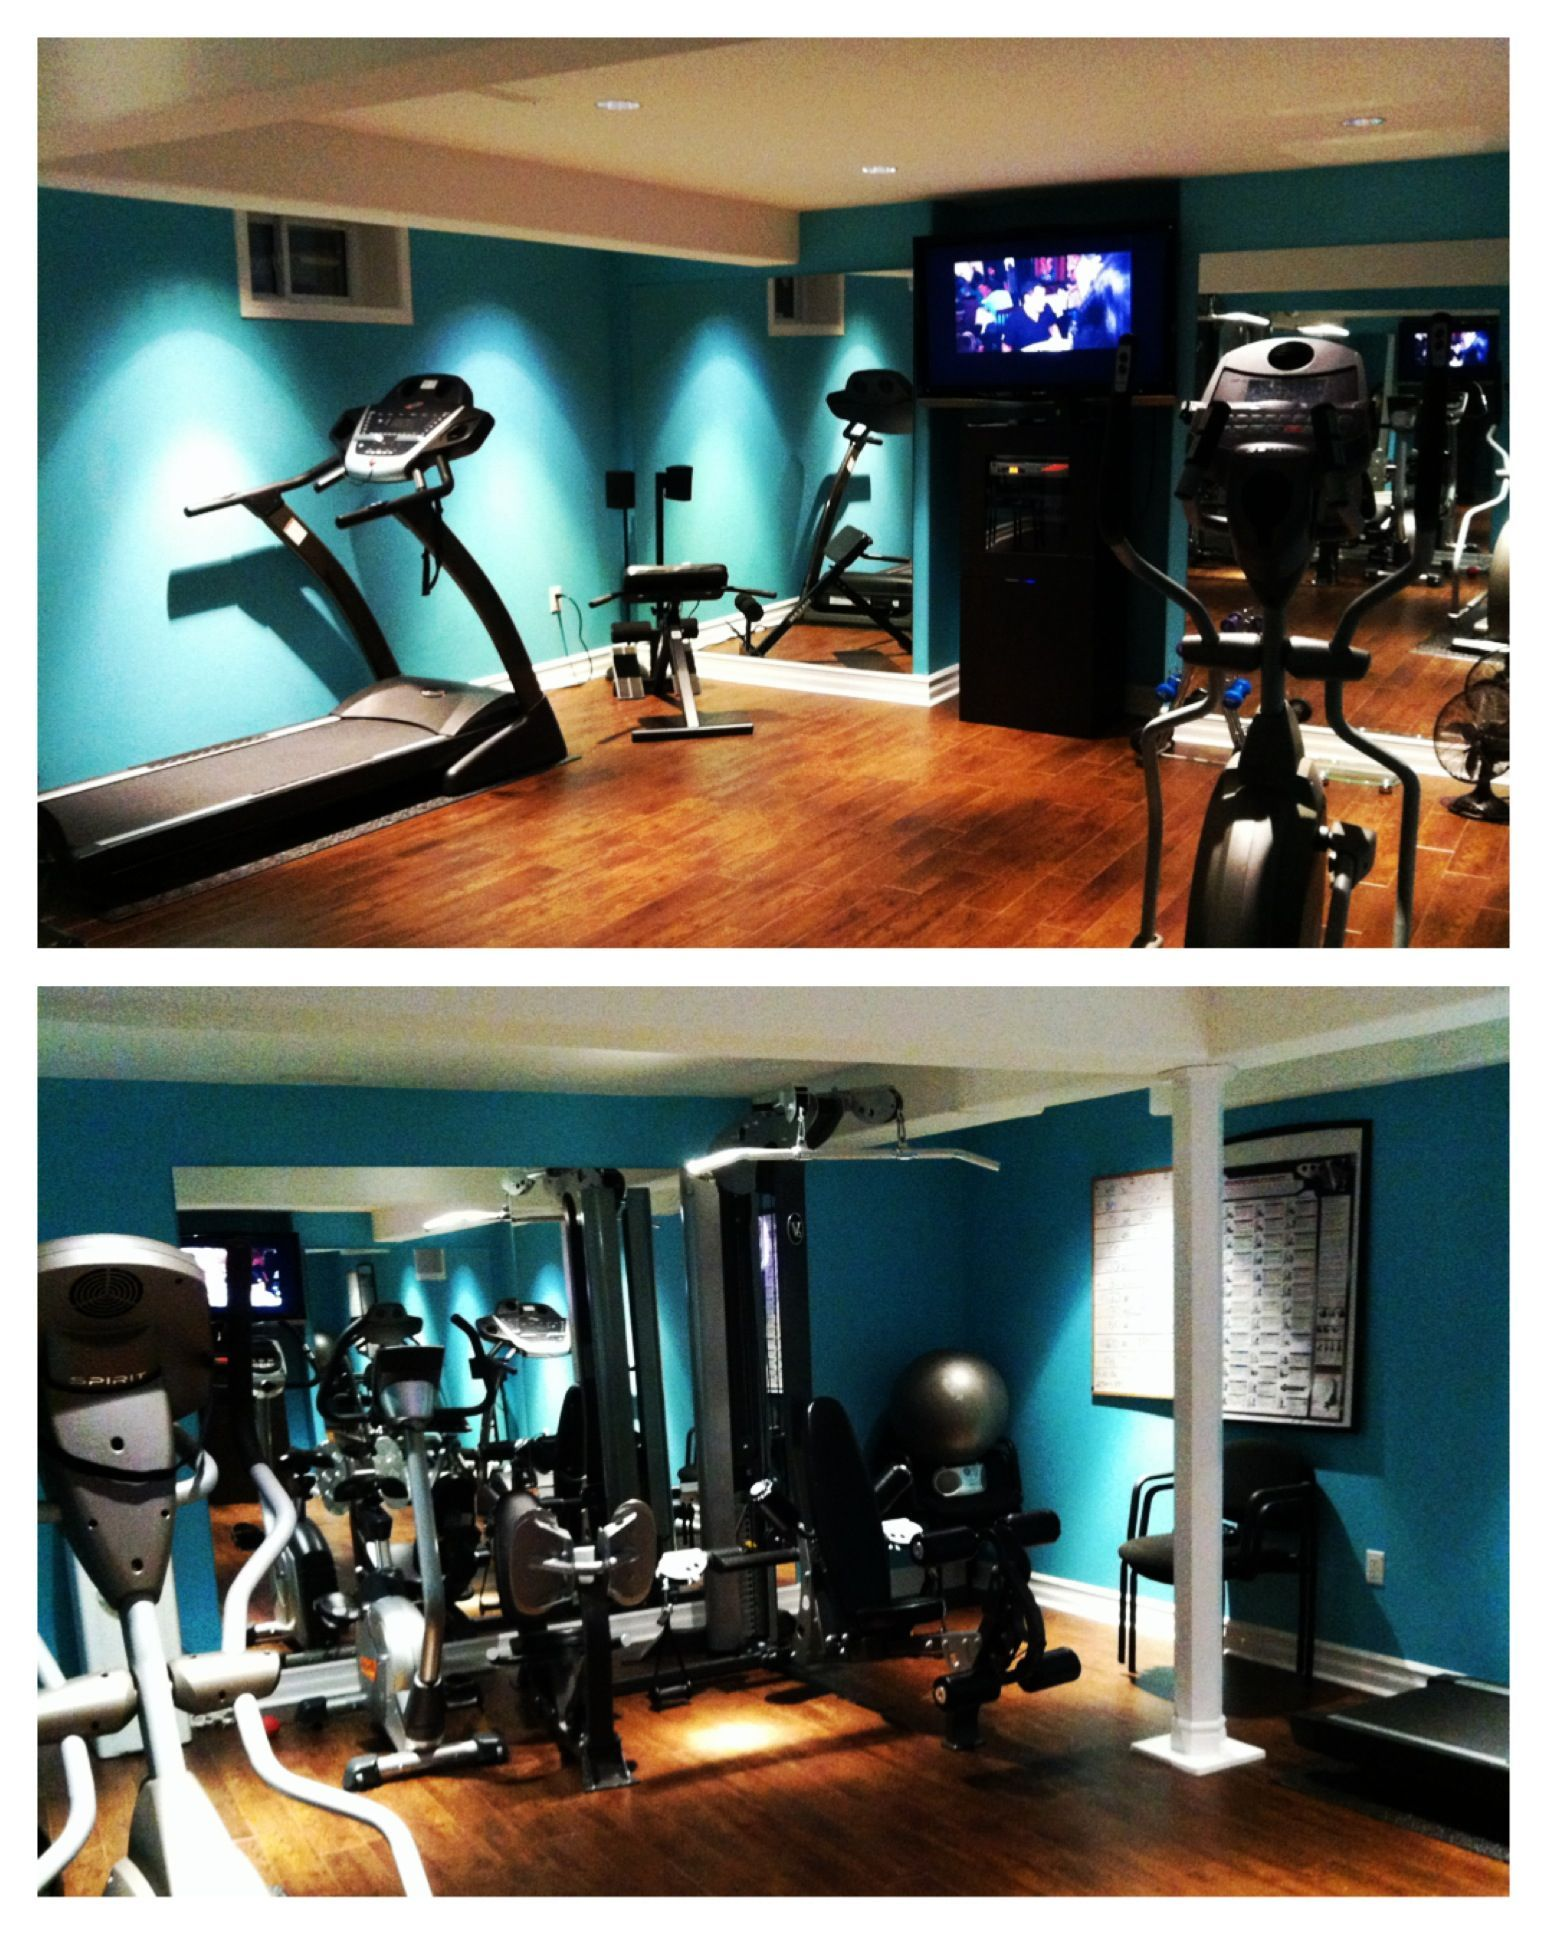 Art Decor On Basement Home Gym Decor